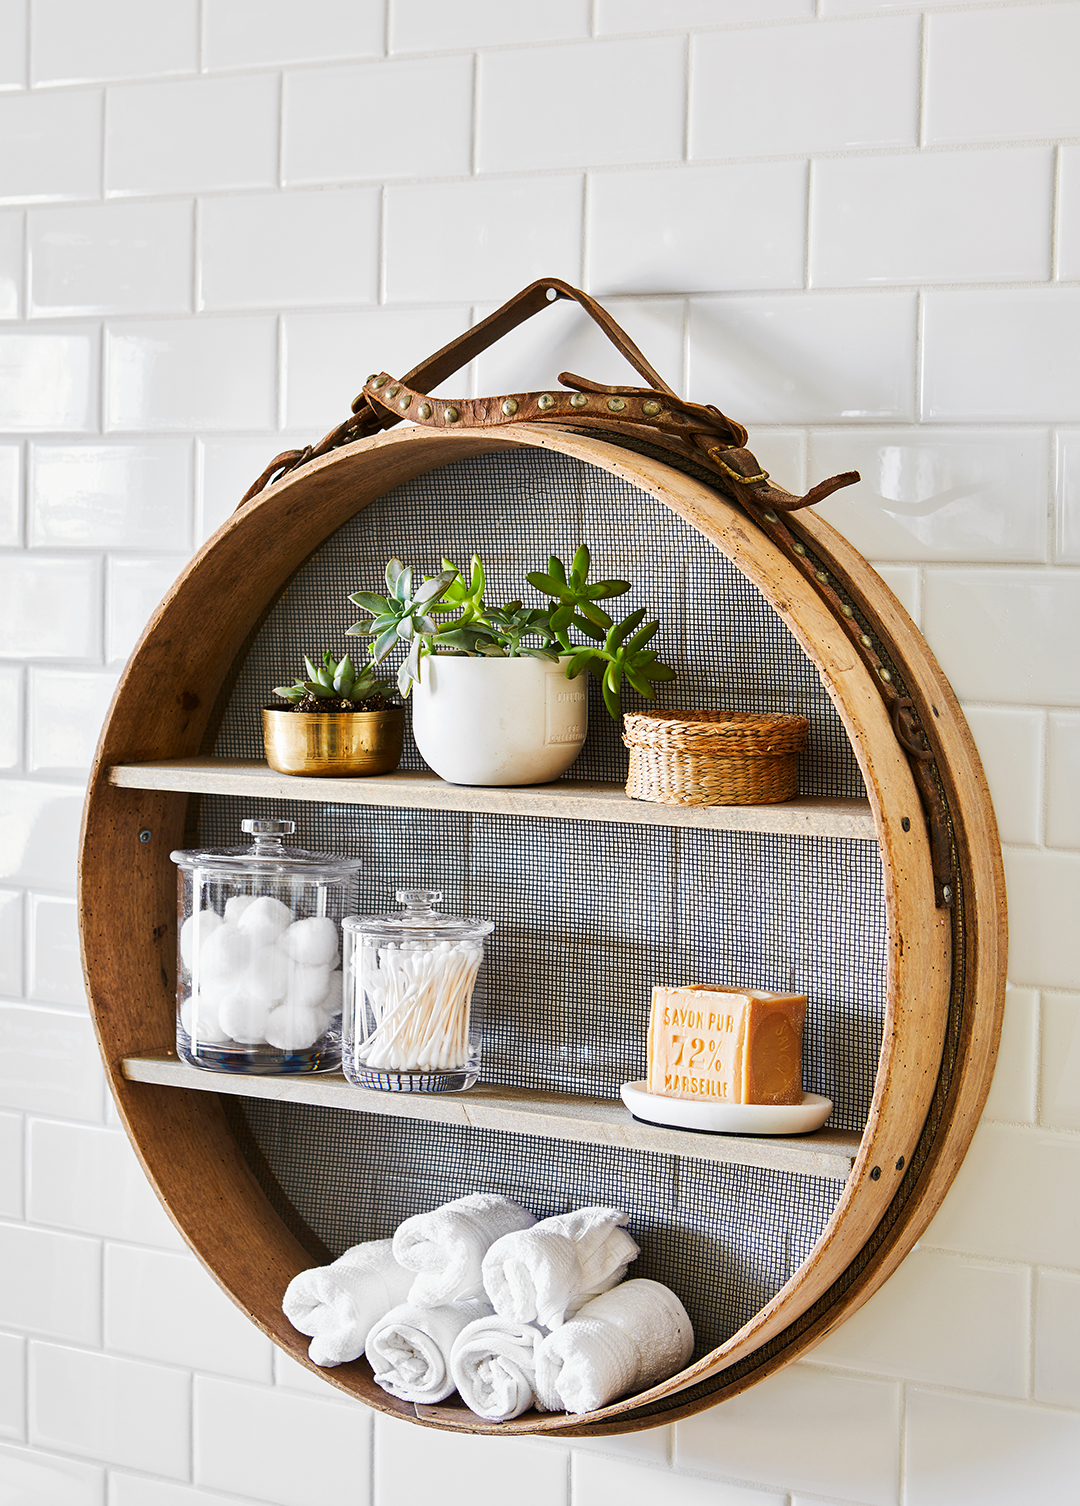 shelving unit made with grain sifter